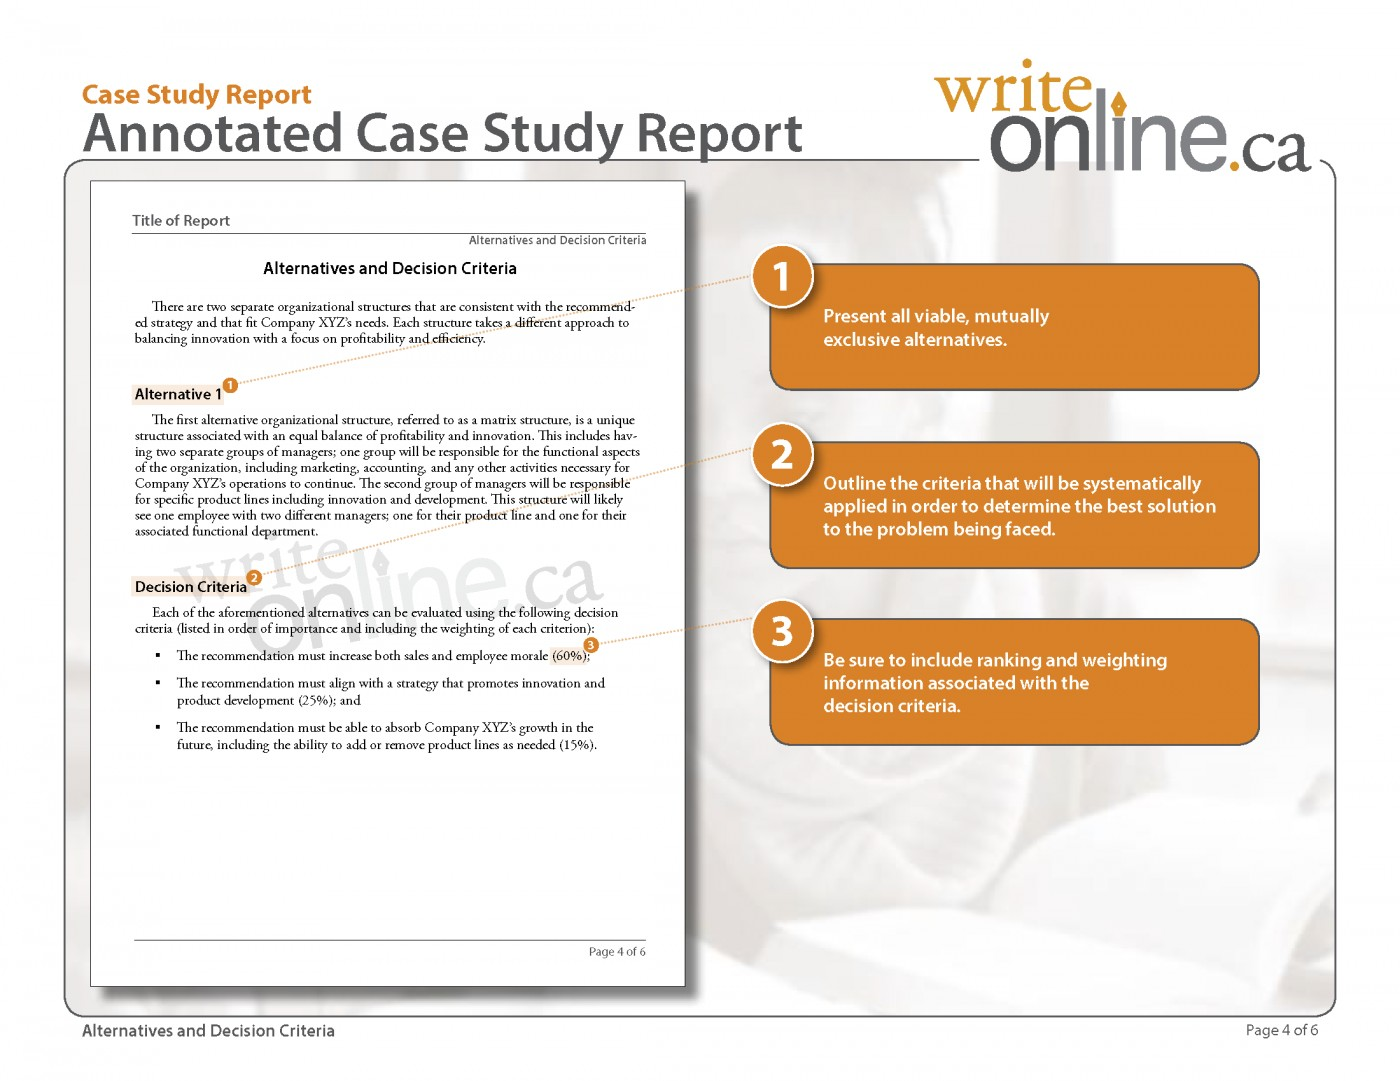 017 Parts Of Research Paper Apa Casestudy Annotatedfull Page 4 Unbelievable A 1400